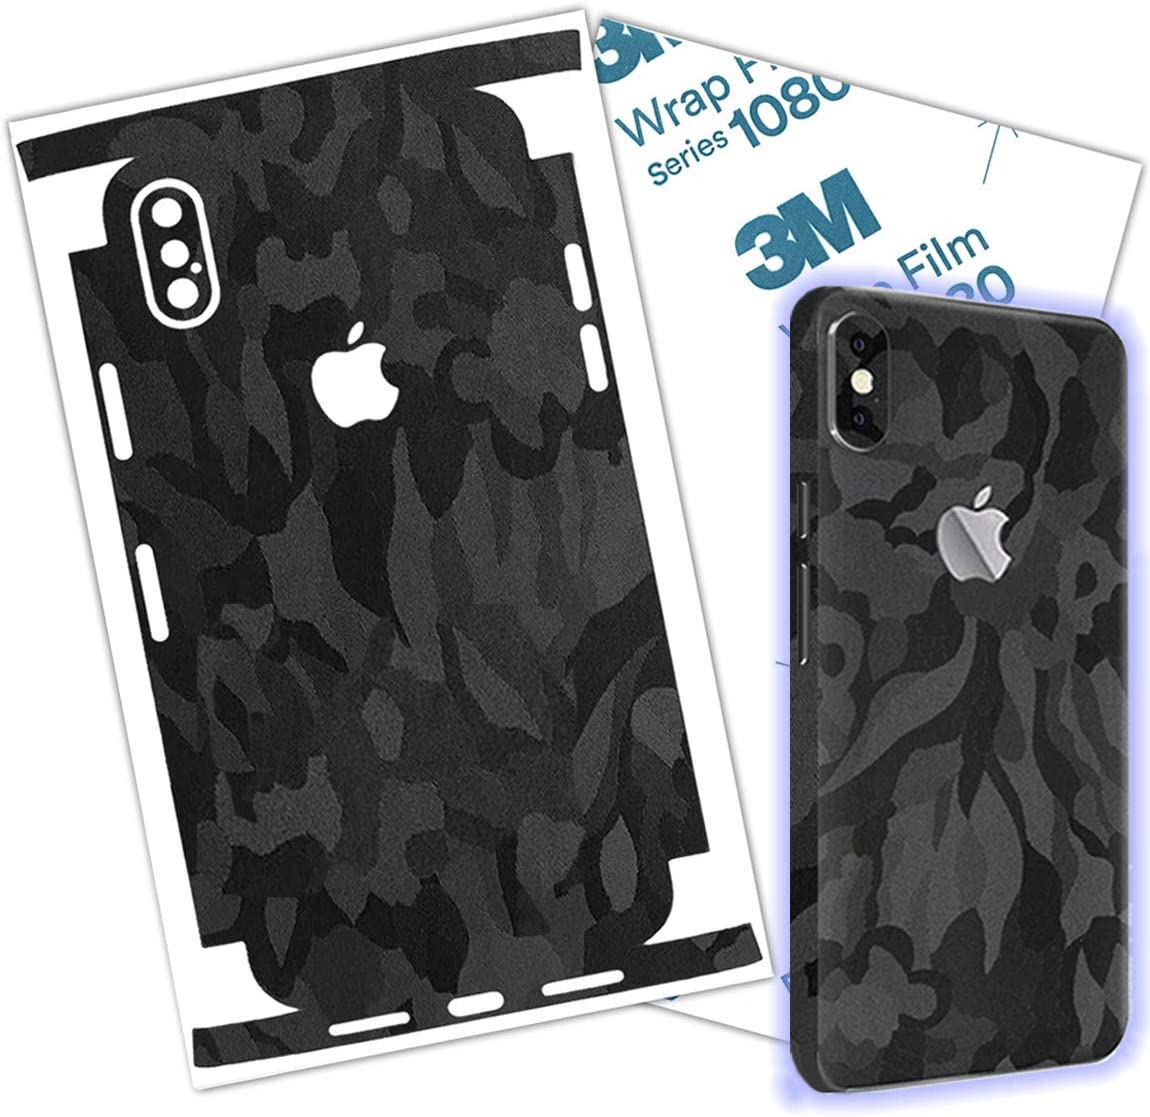 Betxell Camo iPhone Skin Protective 3M Film Wrap Around Edges Cover Black Skin for iPhone 7, 8, 8 Plus, X, Xs, Xs Max (iPhone Xs MAX)